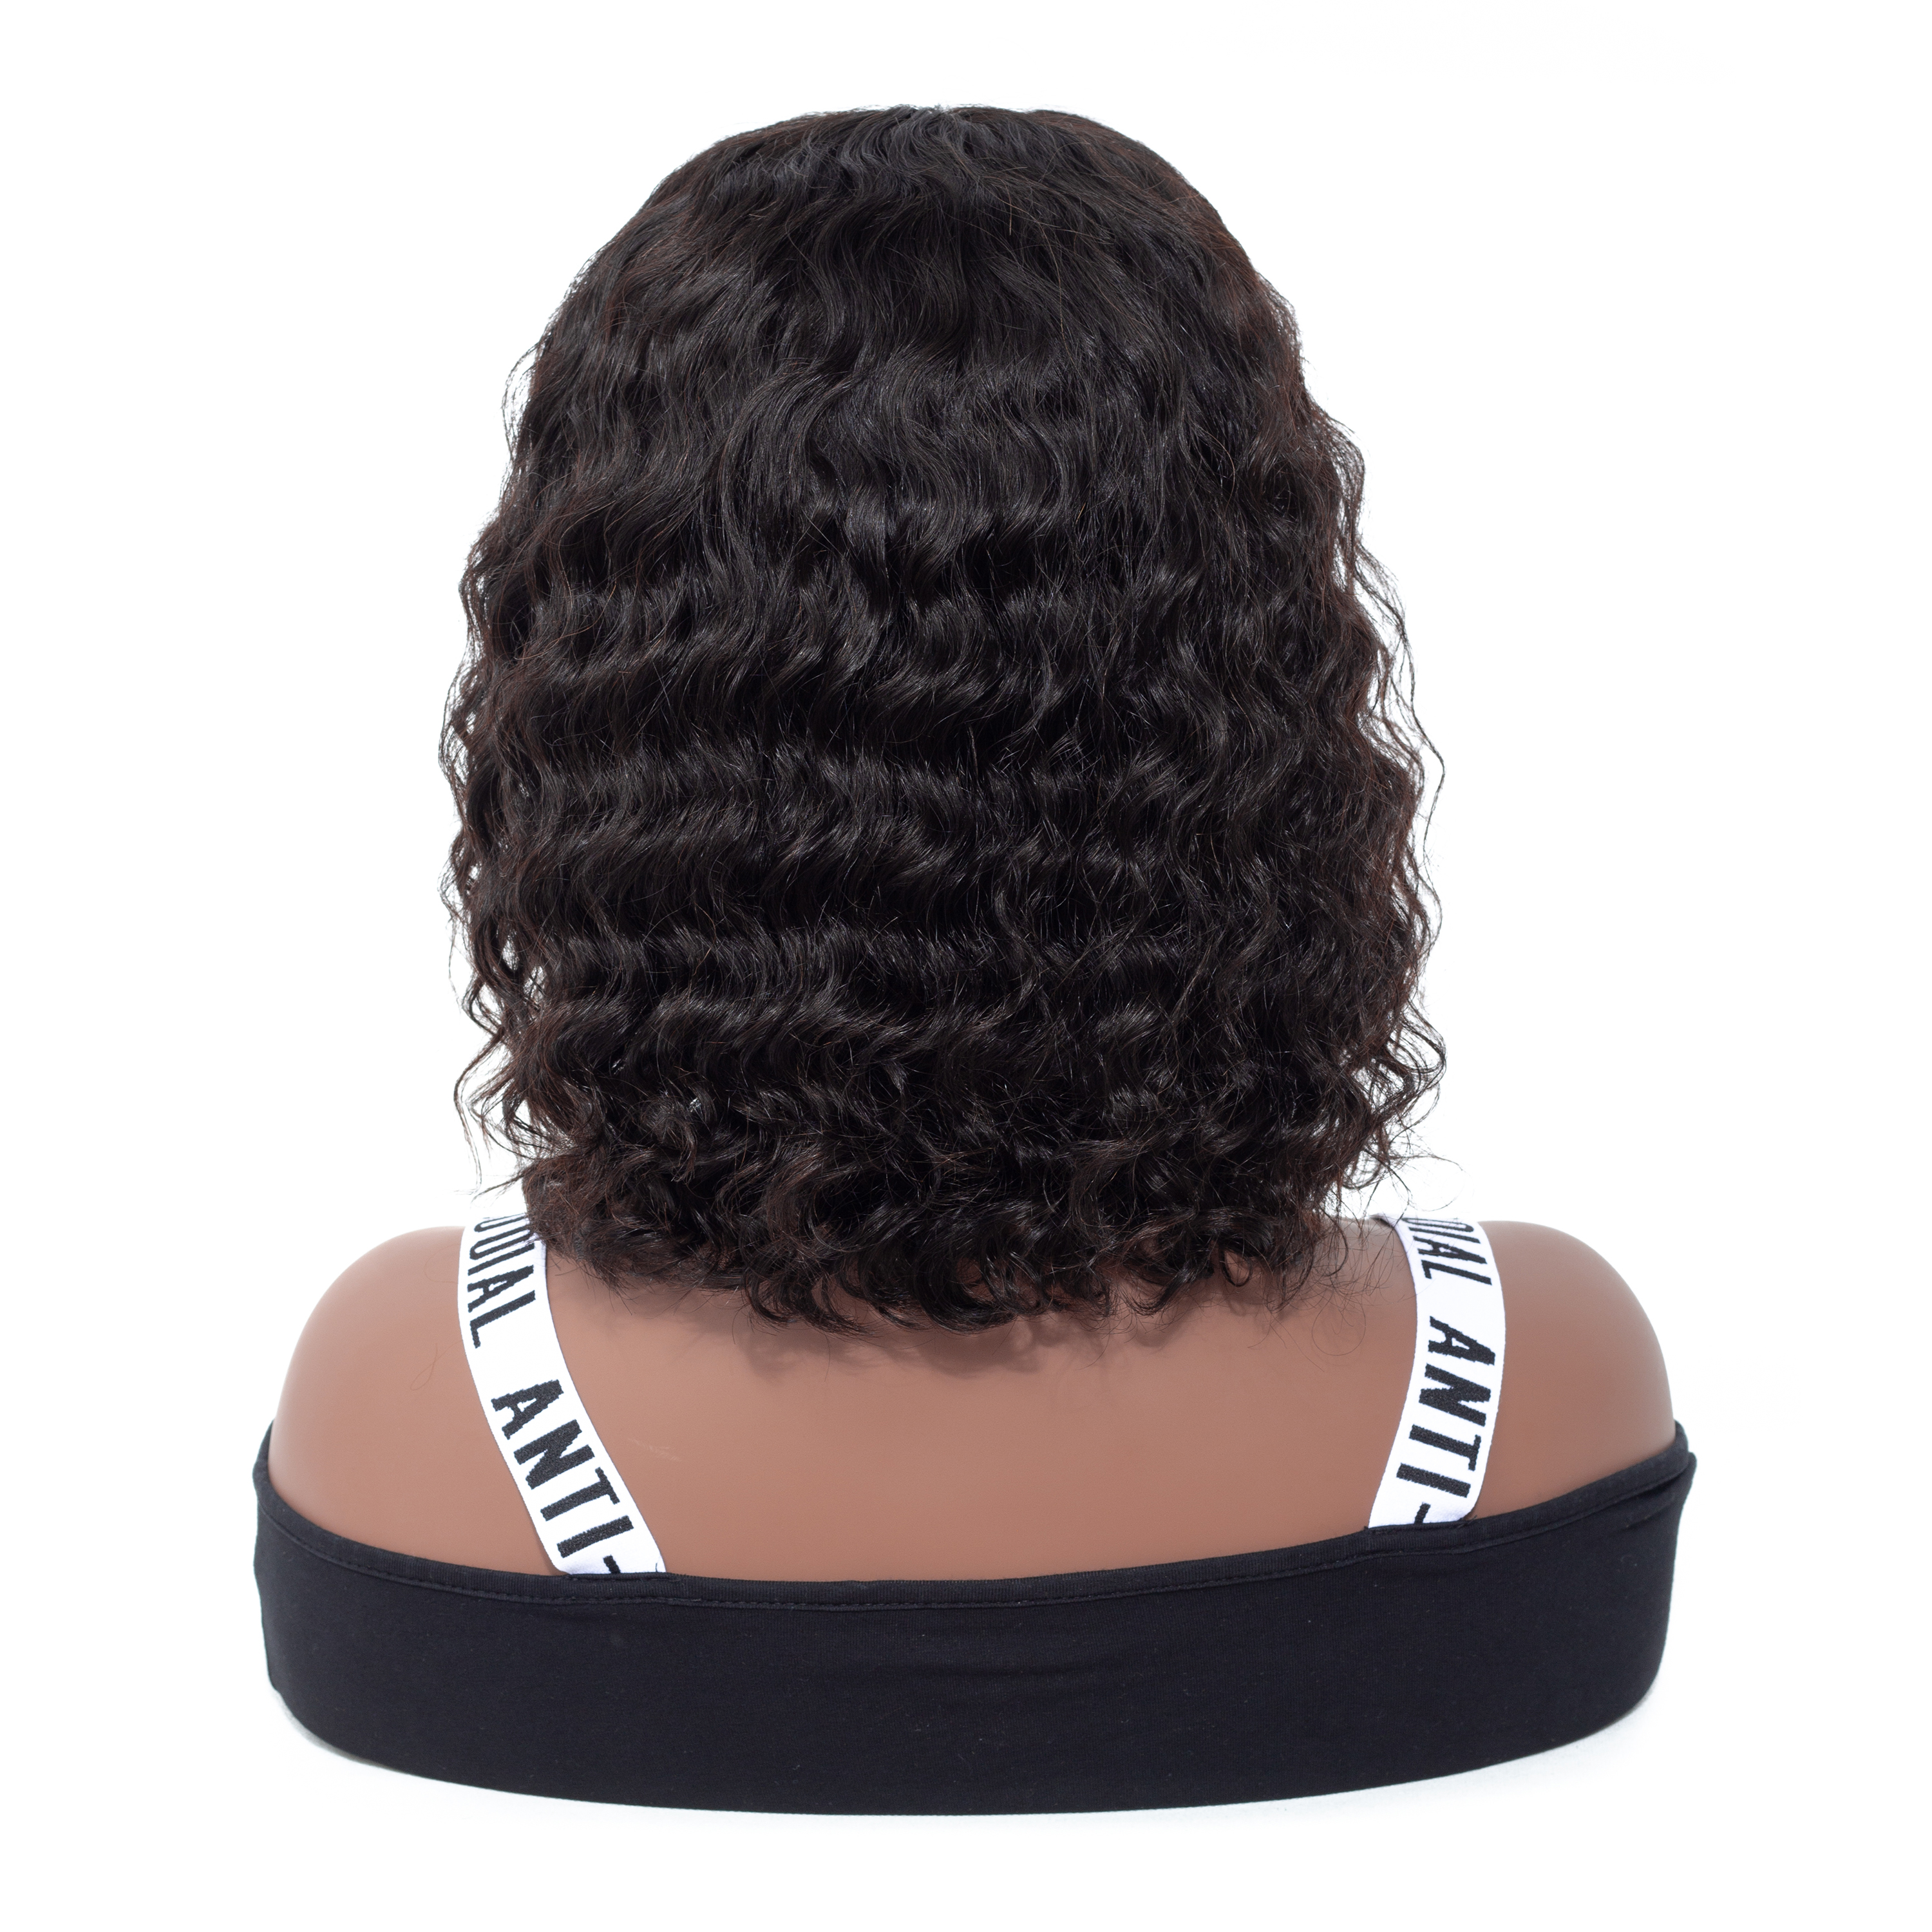 13 4 Lace Front Human Hair Wigs Brazilian Water Wave Short Bob Wigs With Baby Hair VSHOW Remy Hair Lace Front Wigs in Human Hair Lace Wigs from Hair Extensions Wigs